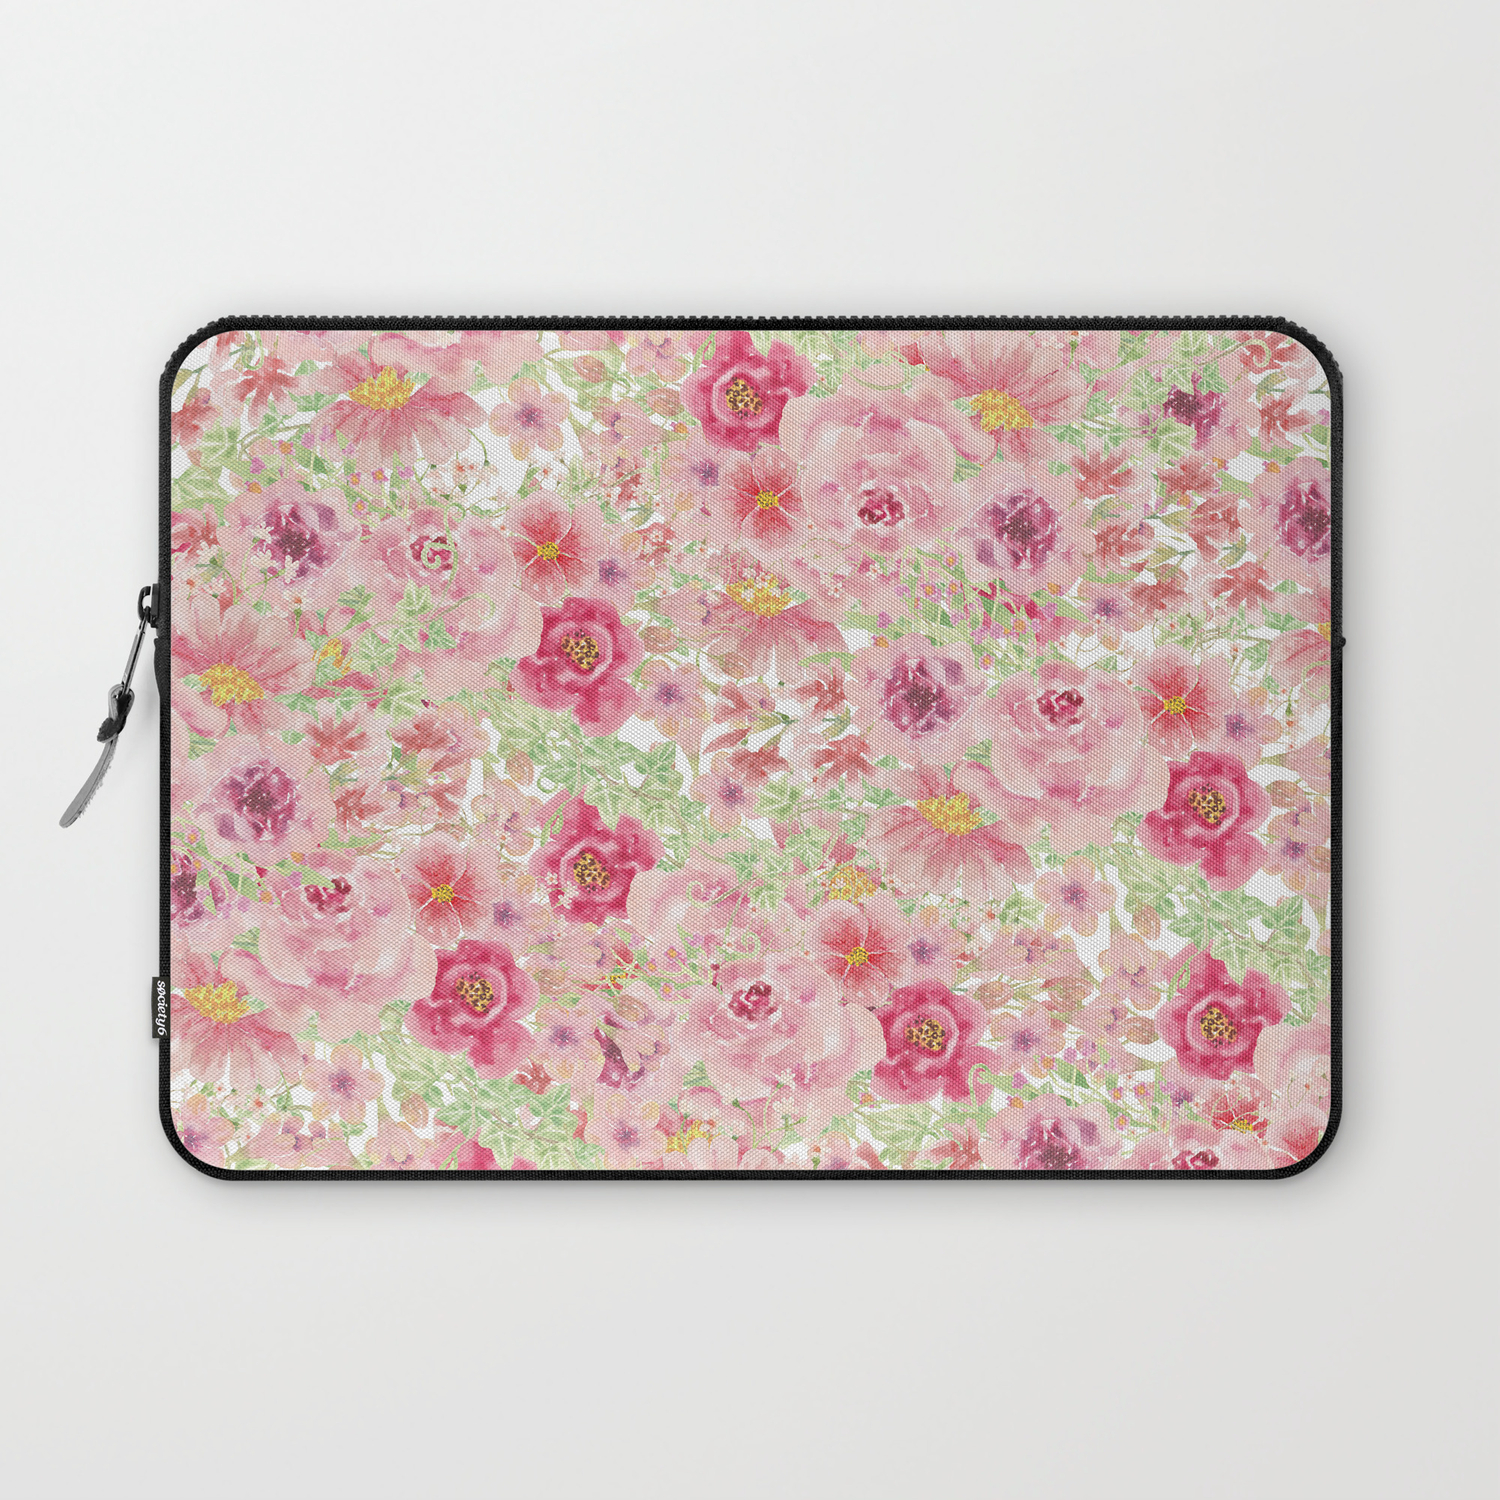 Pastel Pink Red Watercolor Hand Painted Floral Laptop Sleeve By